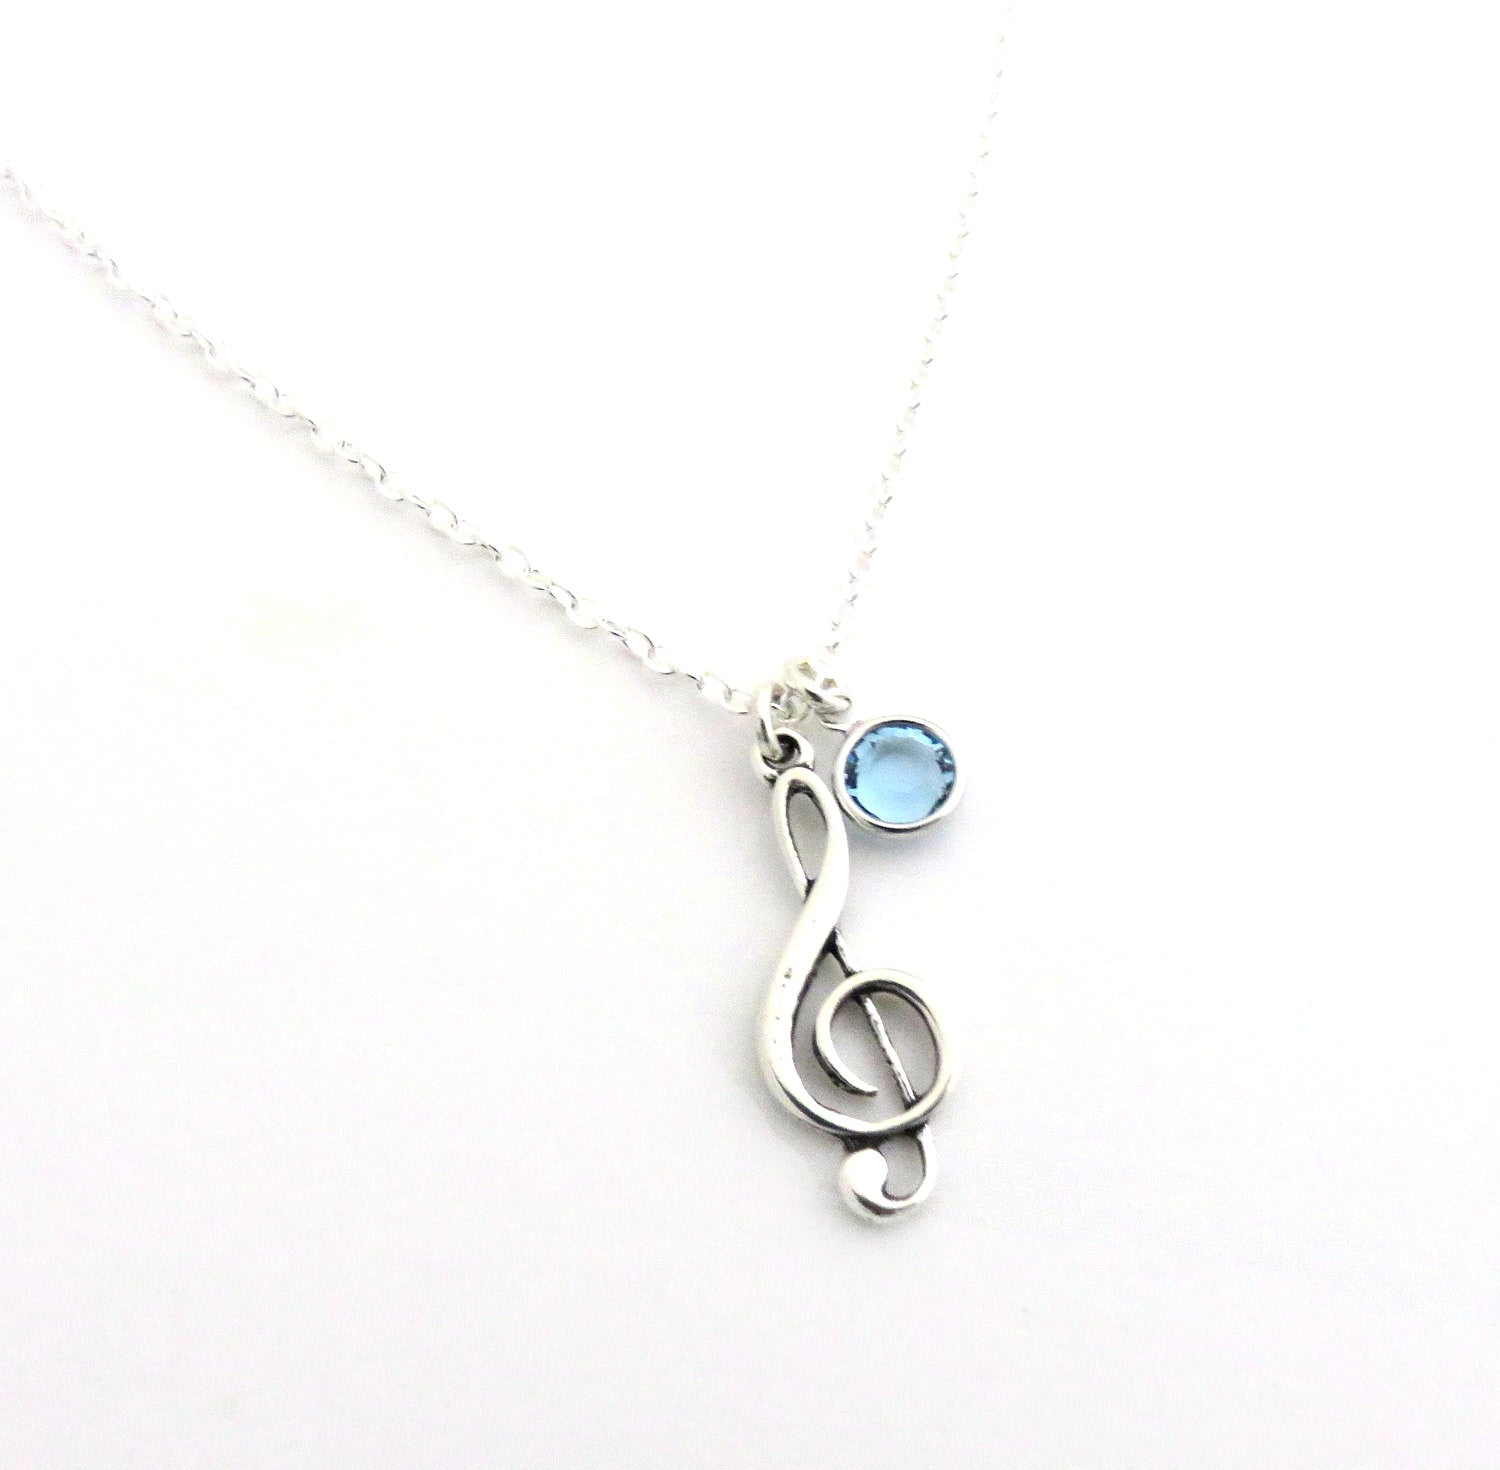 chain jewelry on necklace moodstone pendant rhodium music plated igm